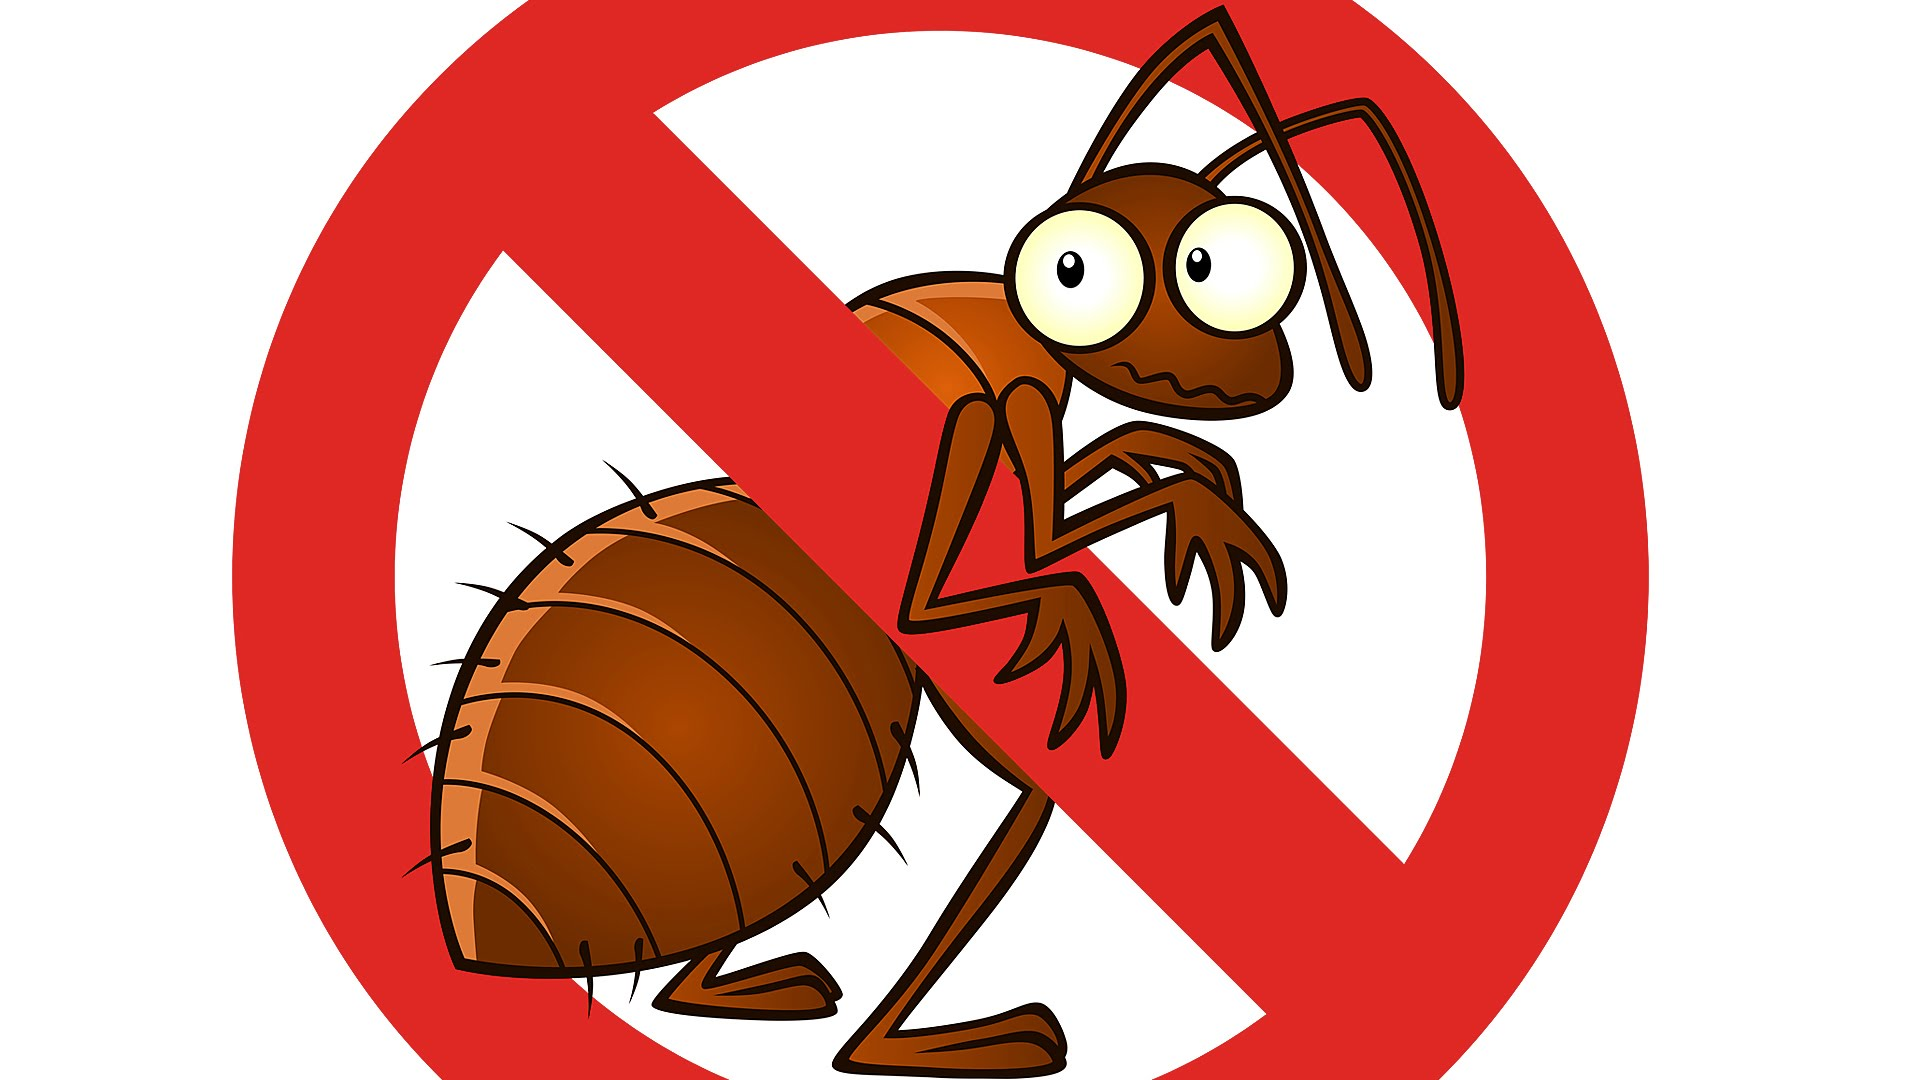 Do You Have a Social Pest in Your Life?